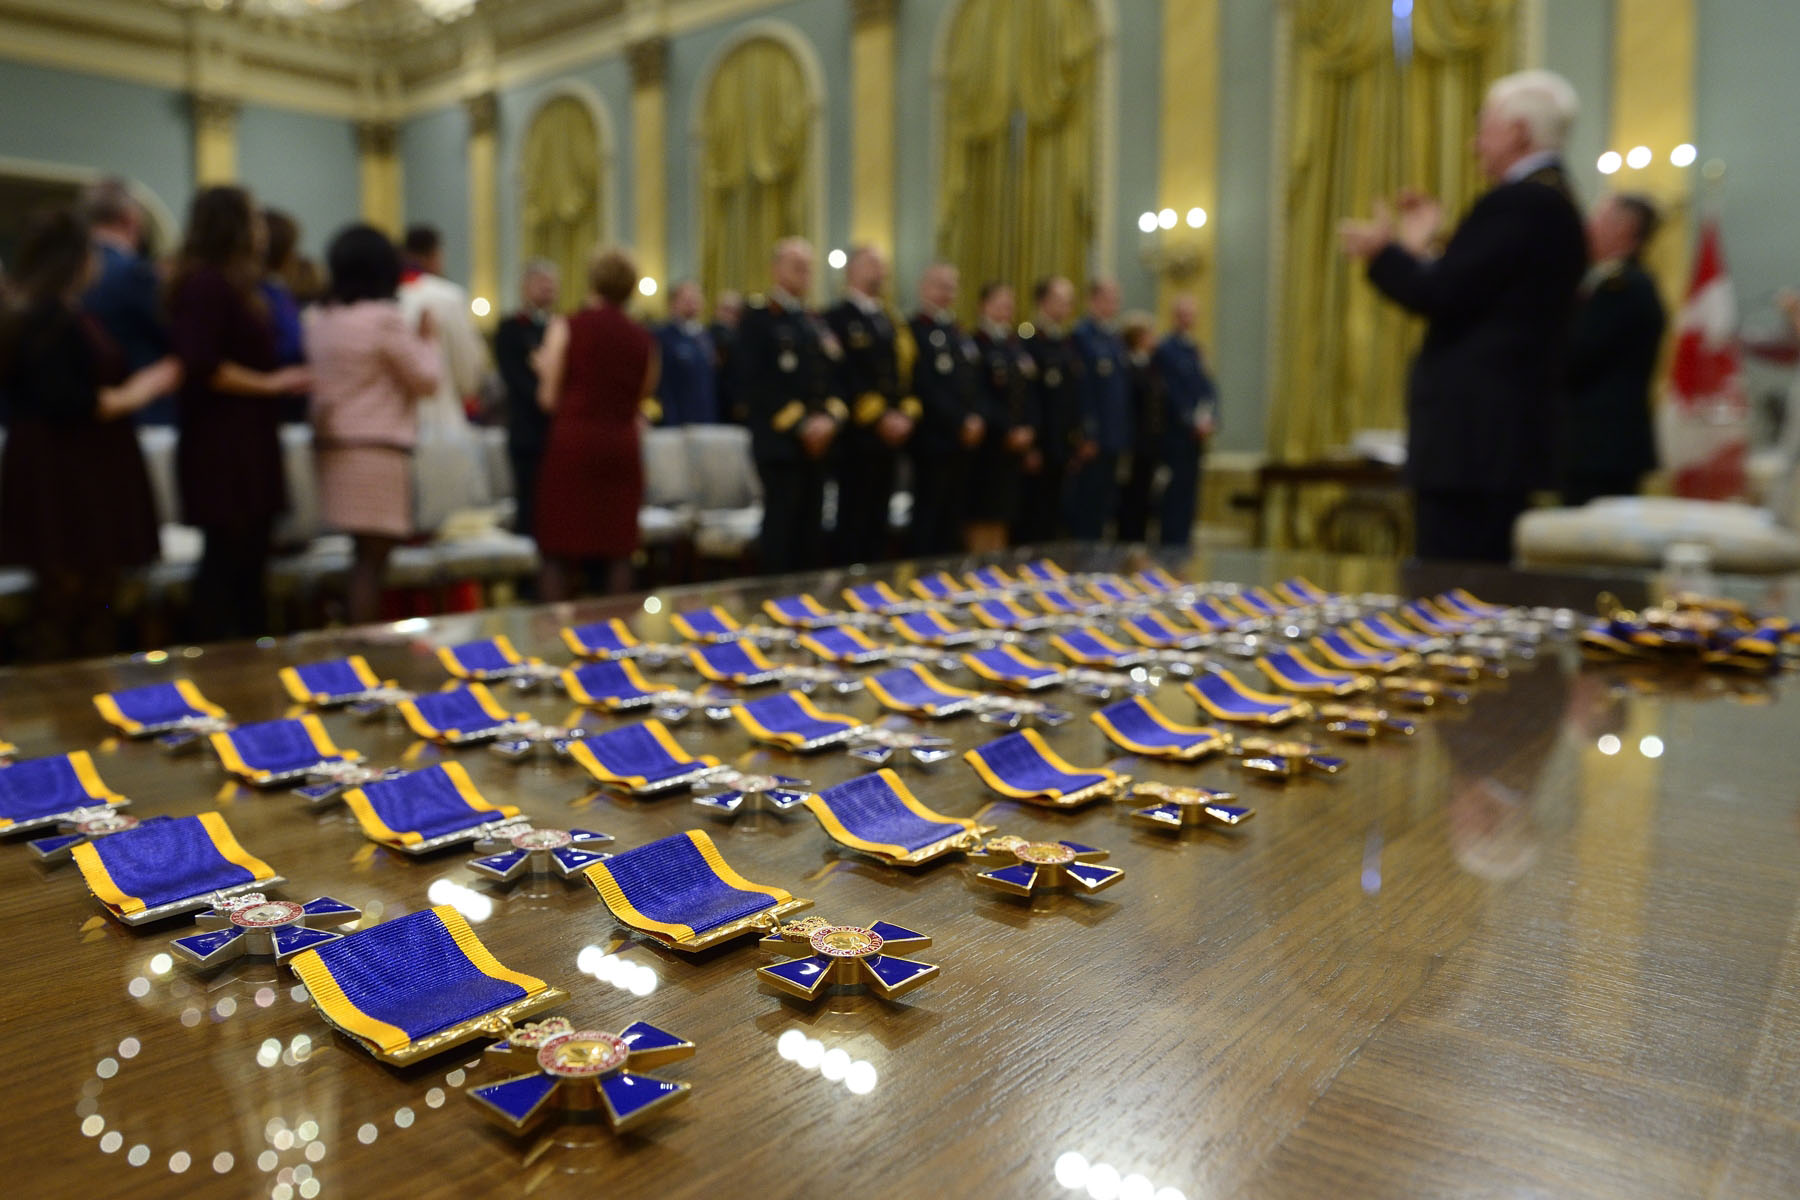 His Excellency the Right Honourable David Johnston, Governor General and Commander-in-Chief of Canada, will preside over an Order of Military Merit investiture ceremony at Rideau Hall. Created in 1972, the Order recognizes meritorious service and devotion to duty by members of the Canadian Armed Forces.